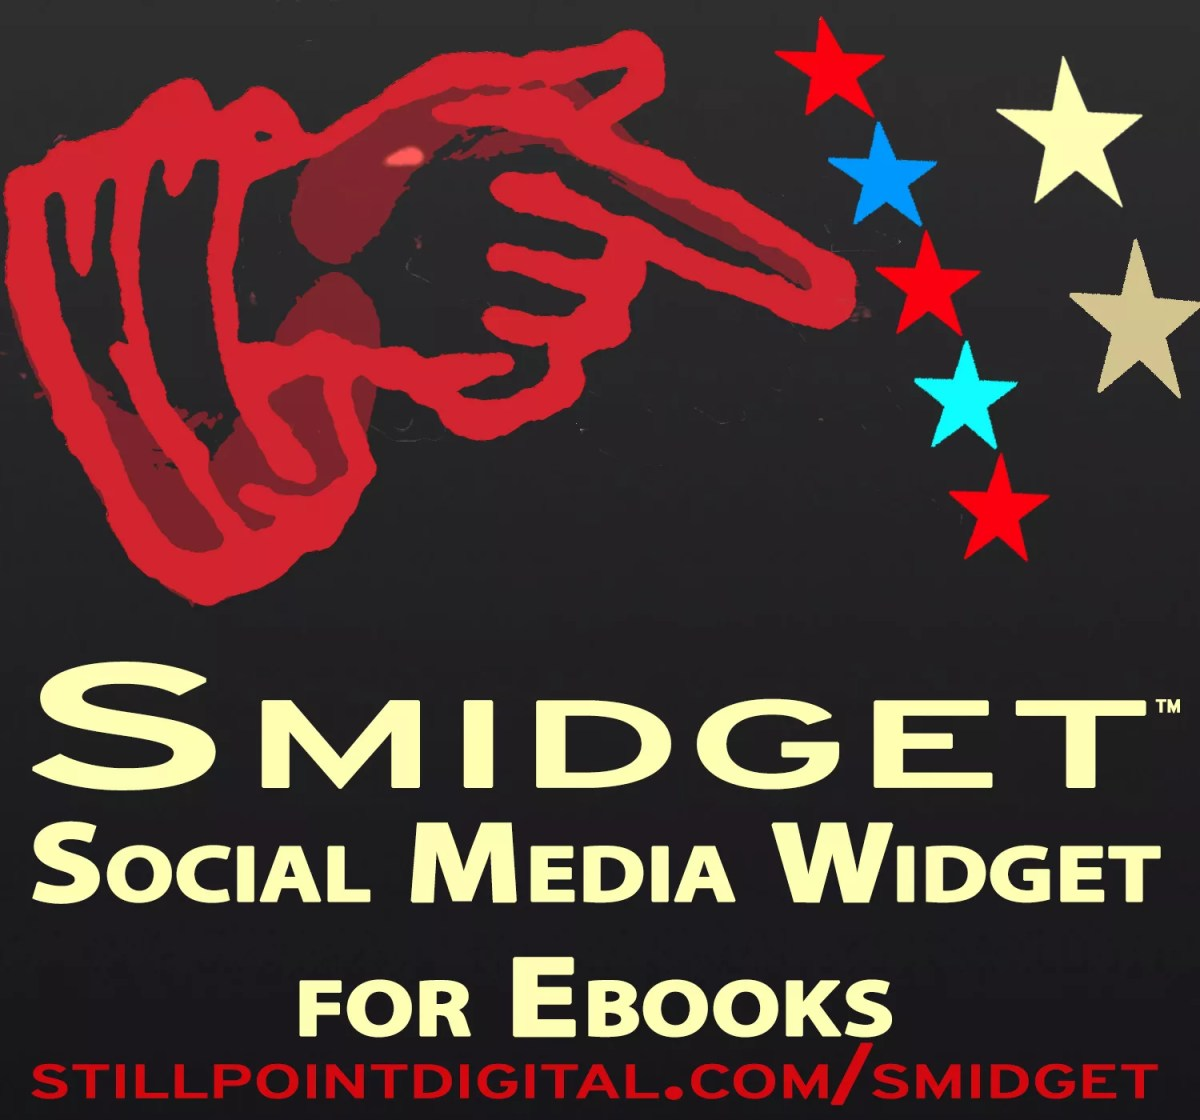 Smidget — the social media widget for ebooks